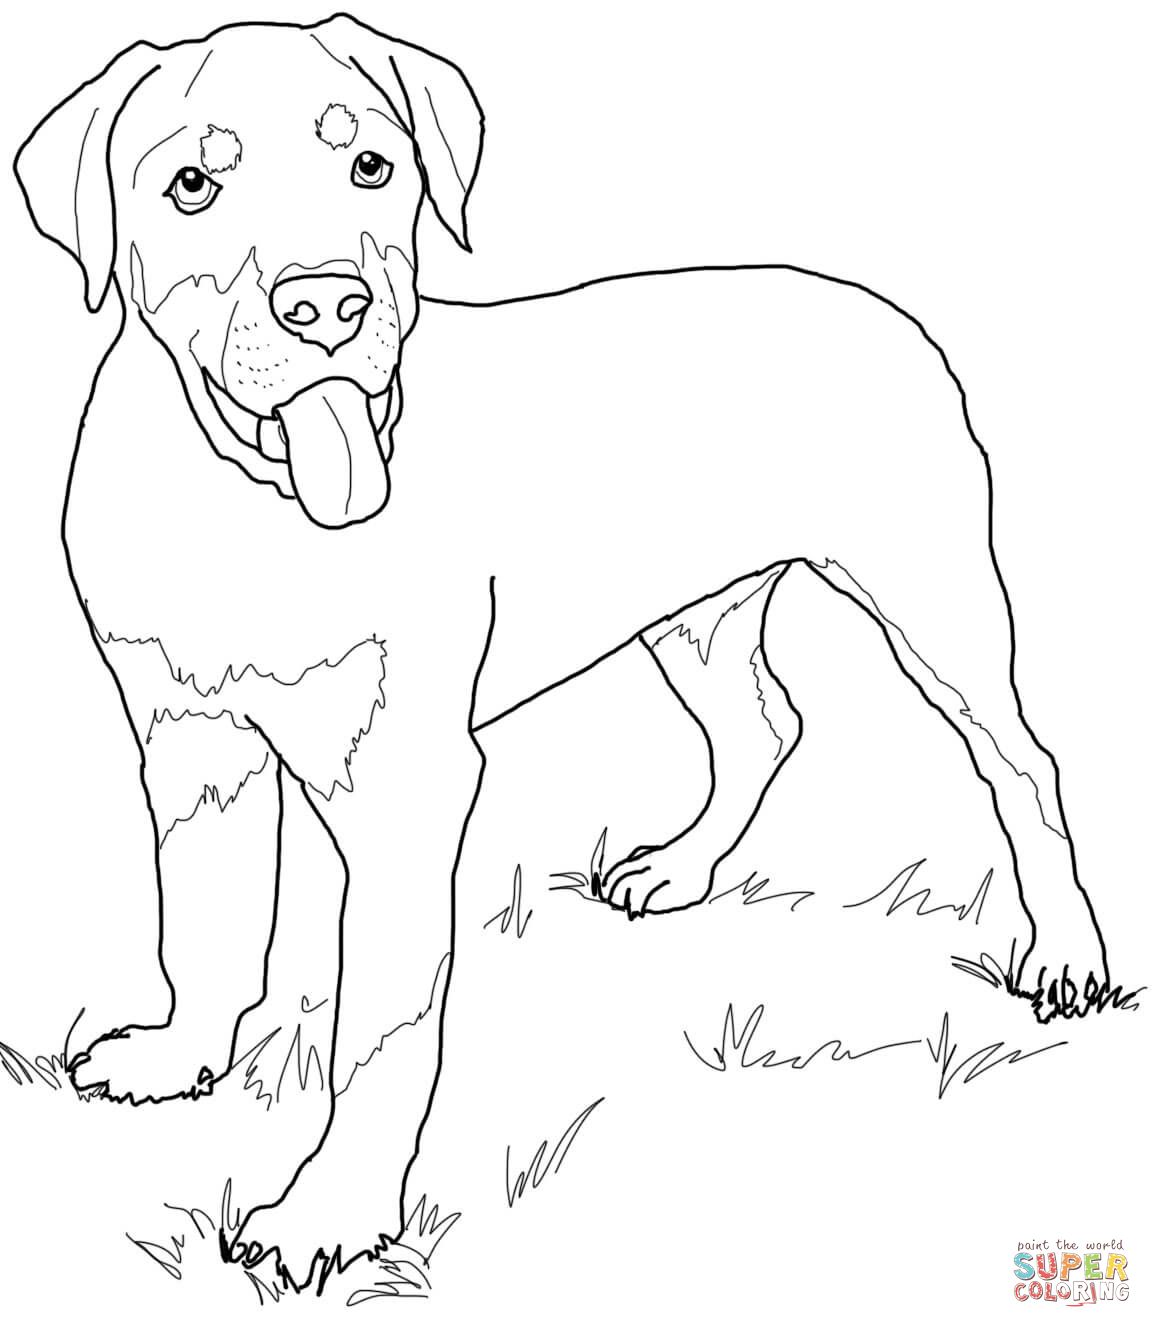 Rottweiler Puppy | Super Coloring | Puppy coloring pages ...